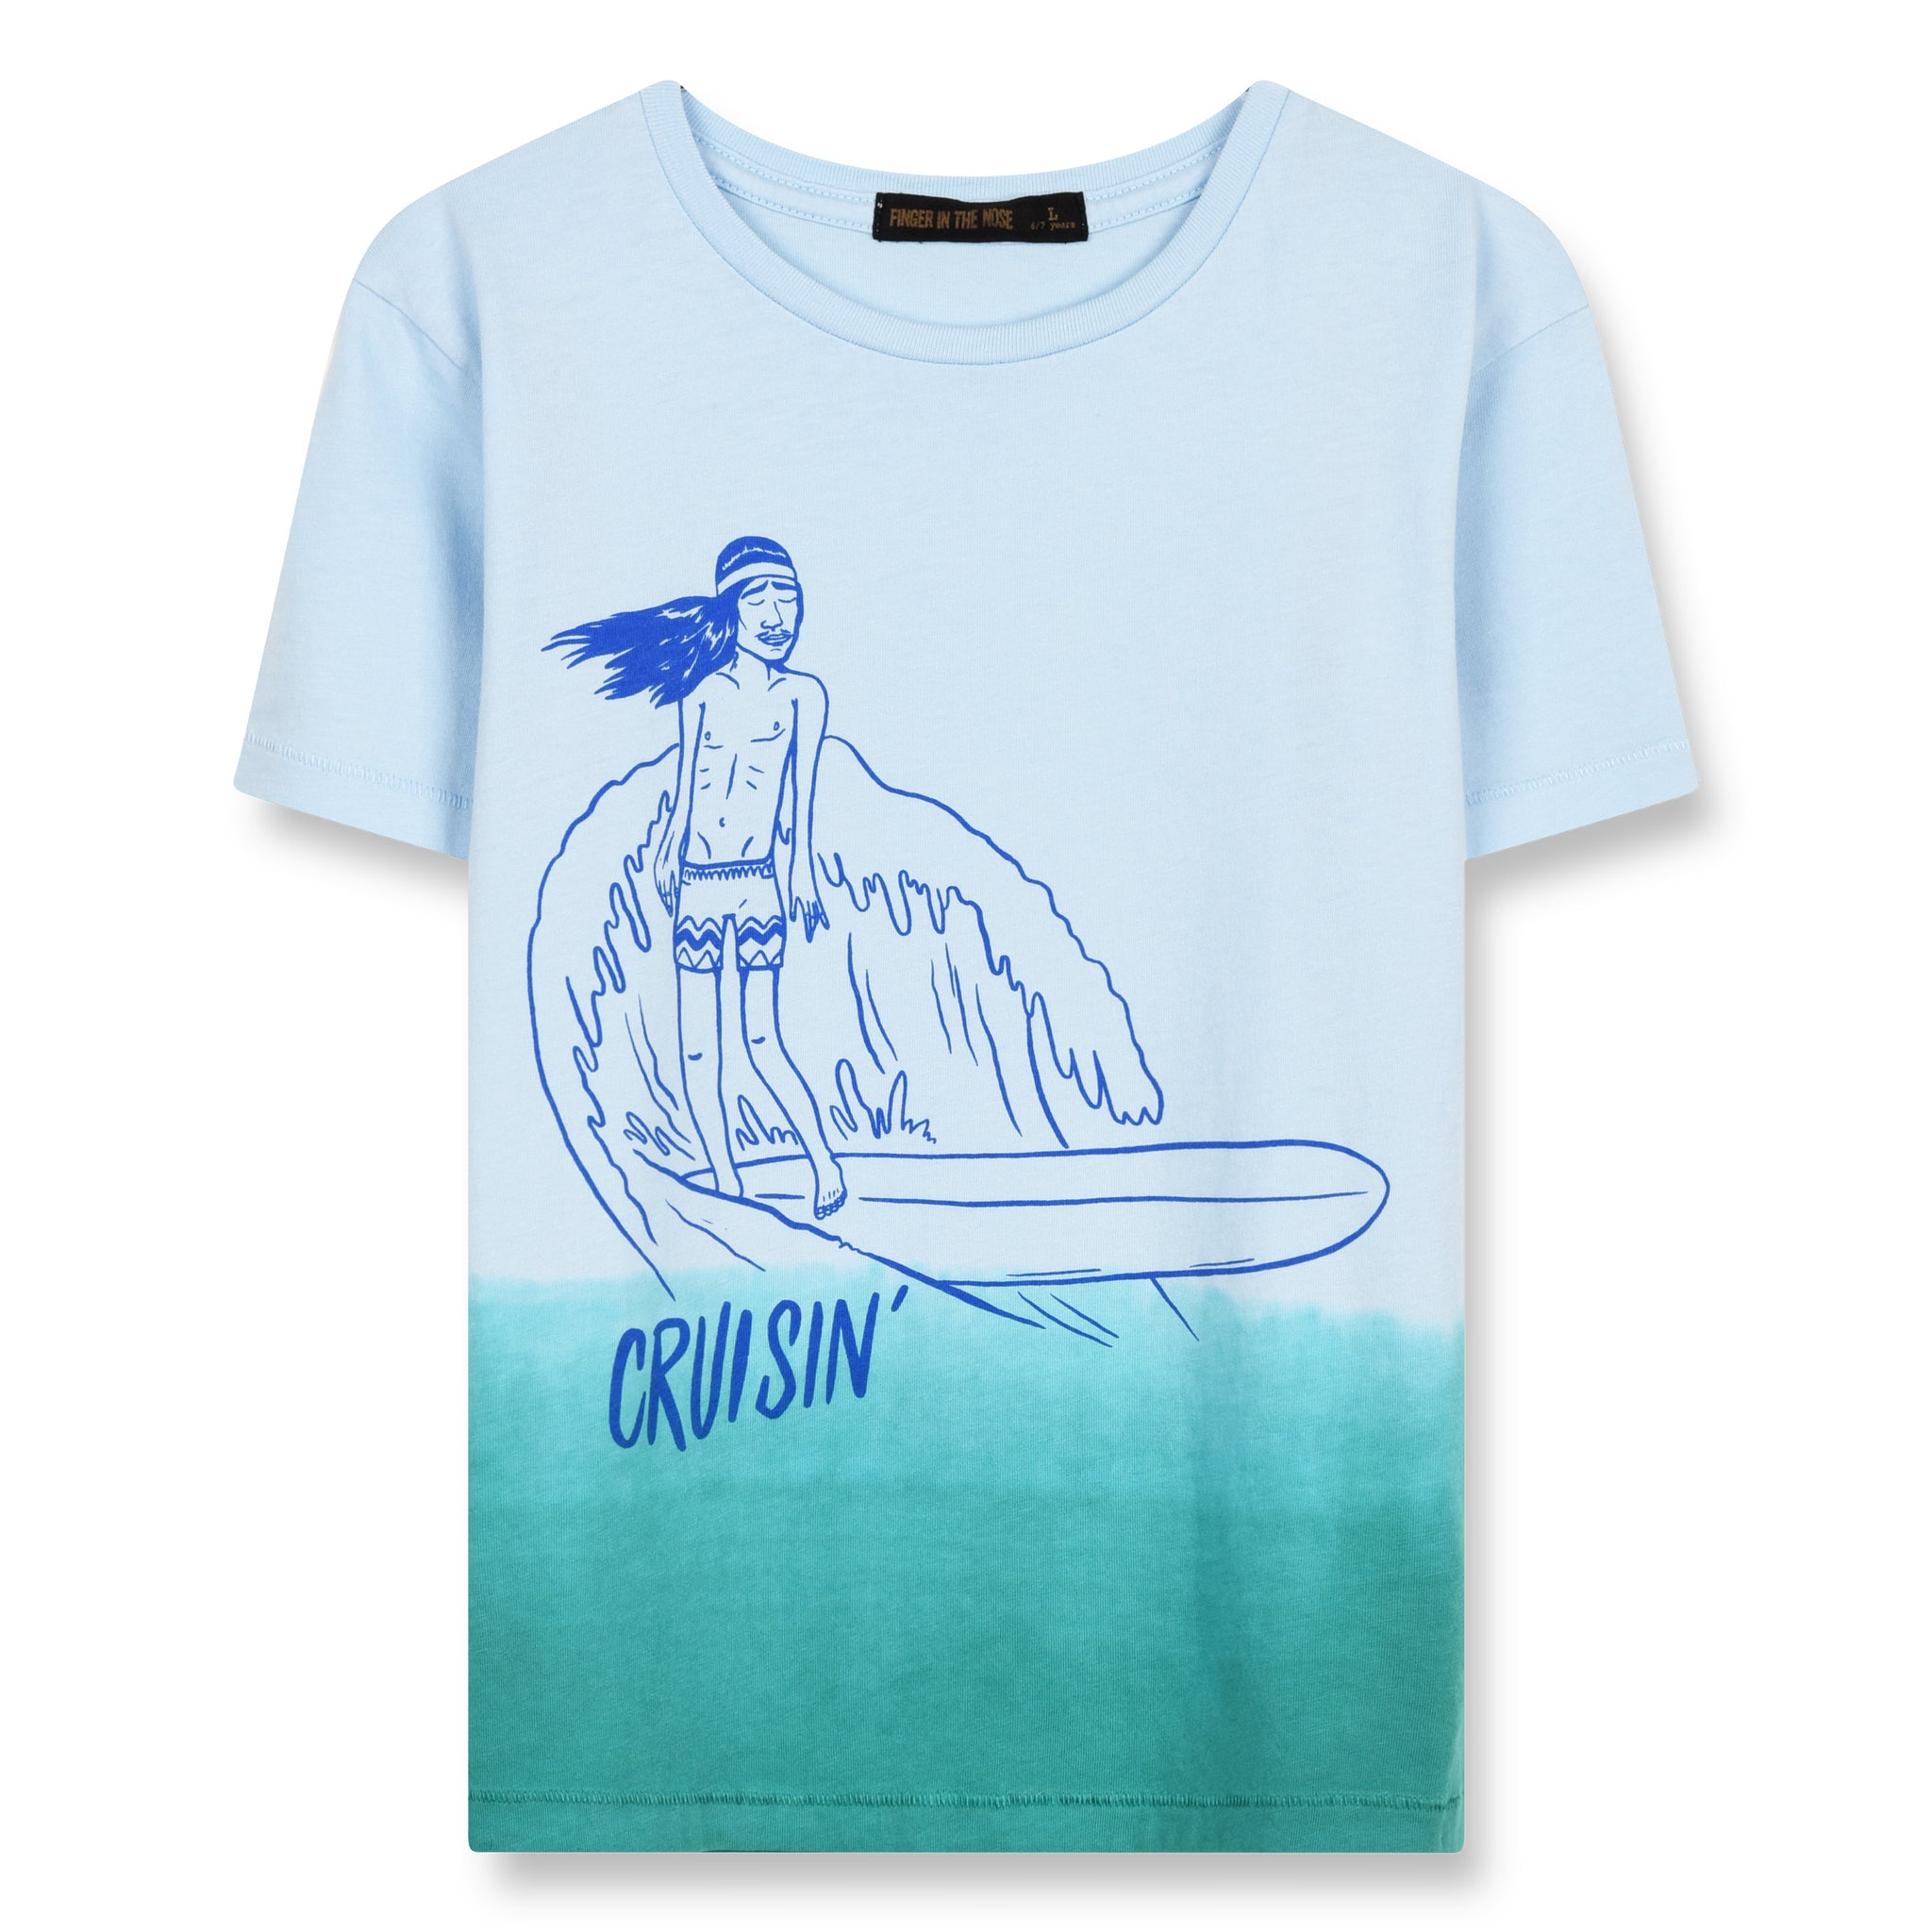 DALTON Wave Blue Cruisin - Short Sleeves T-Shirt 1